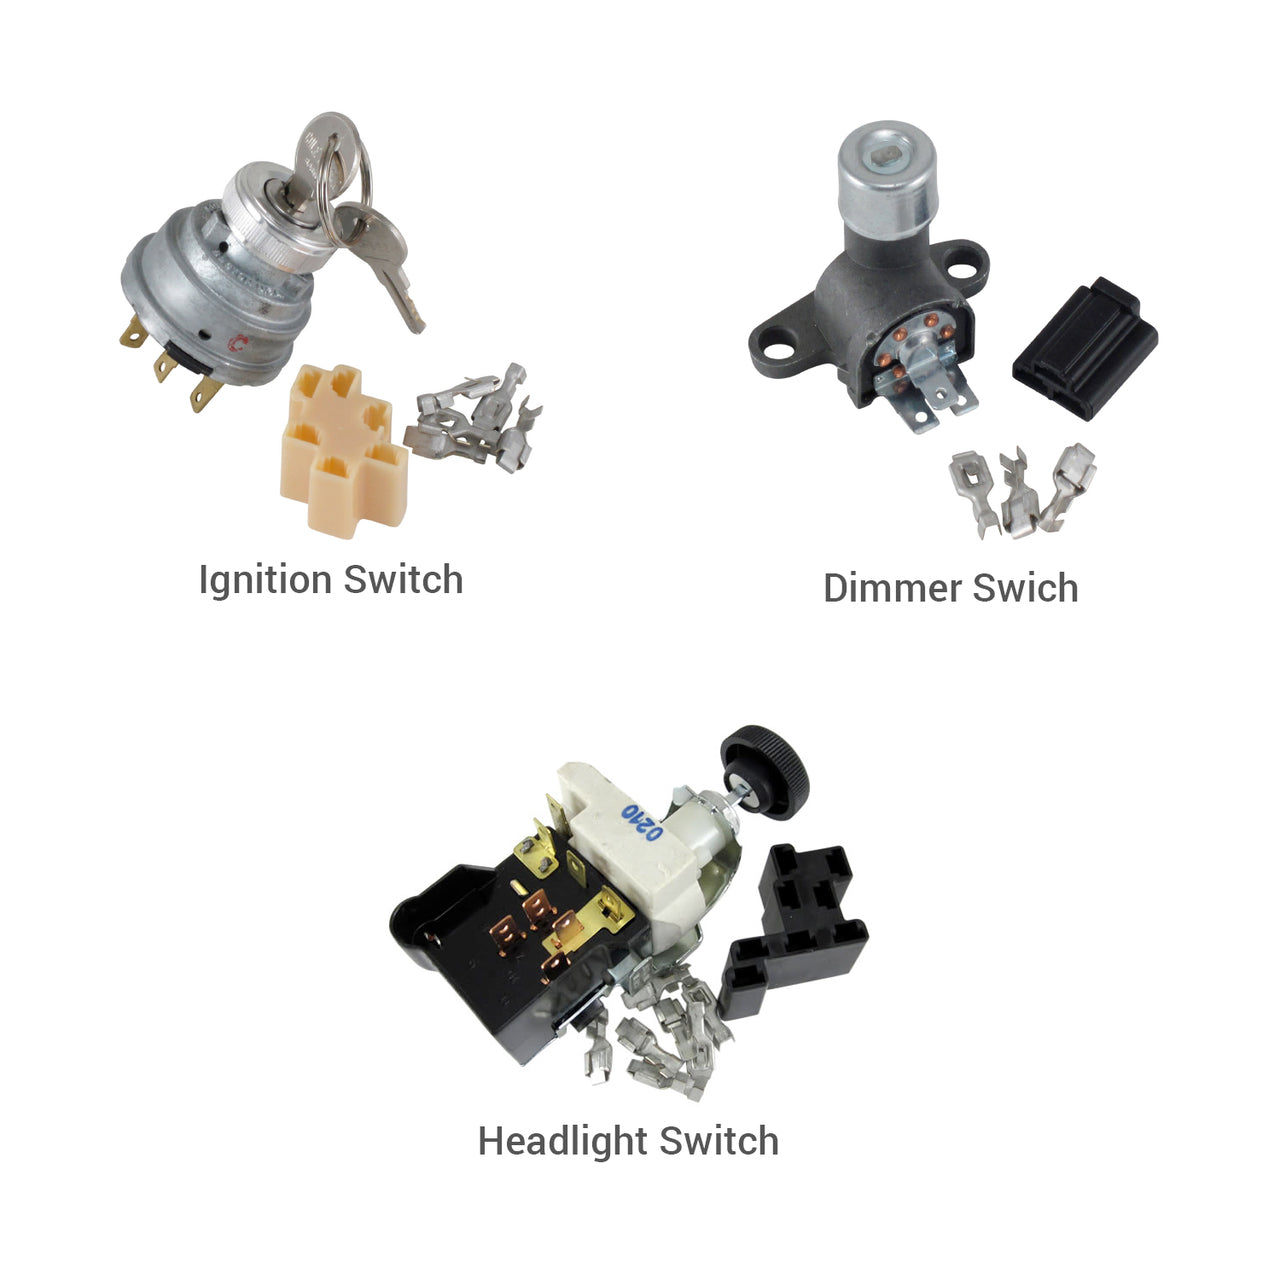 3-Switch Kit Headlight, Dimmer and Ignition Switch